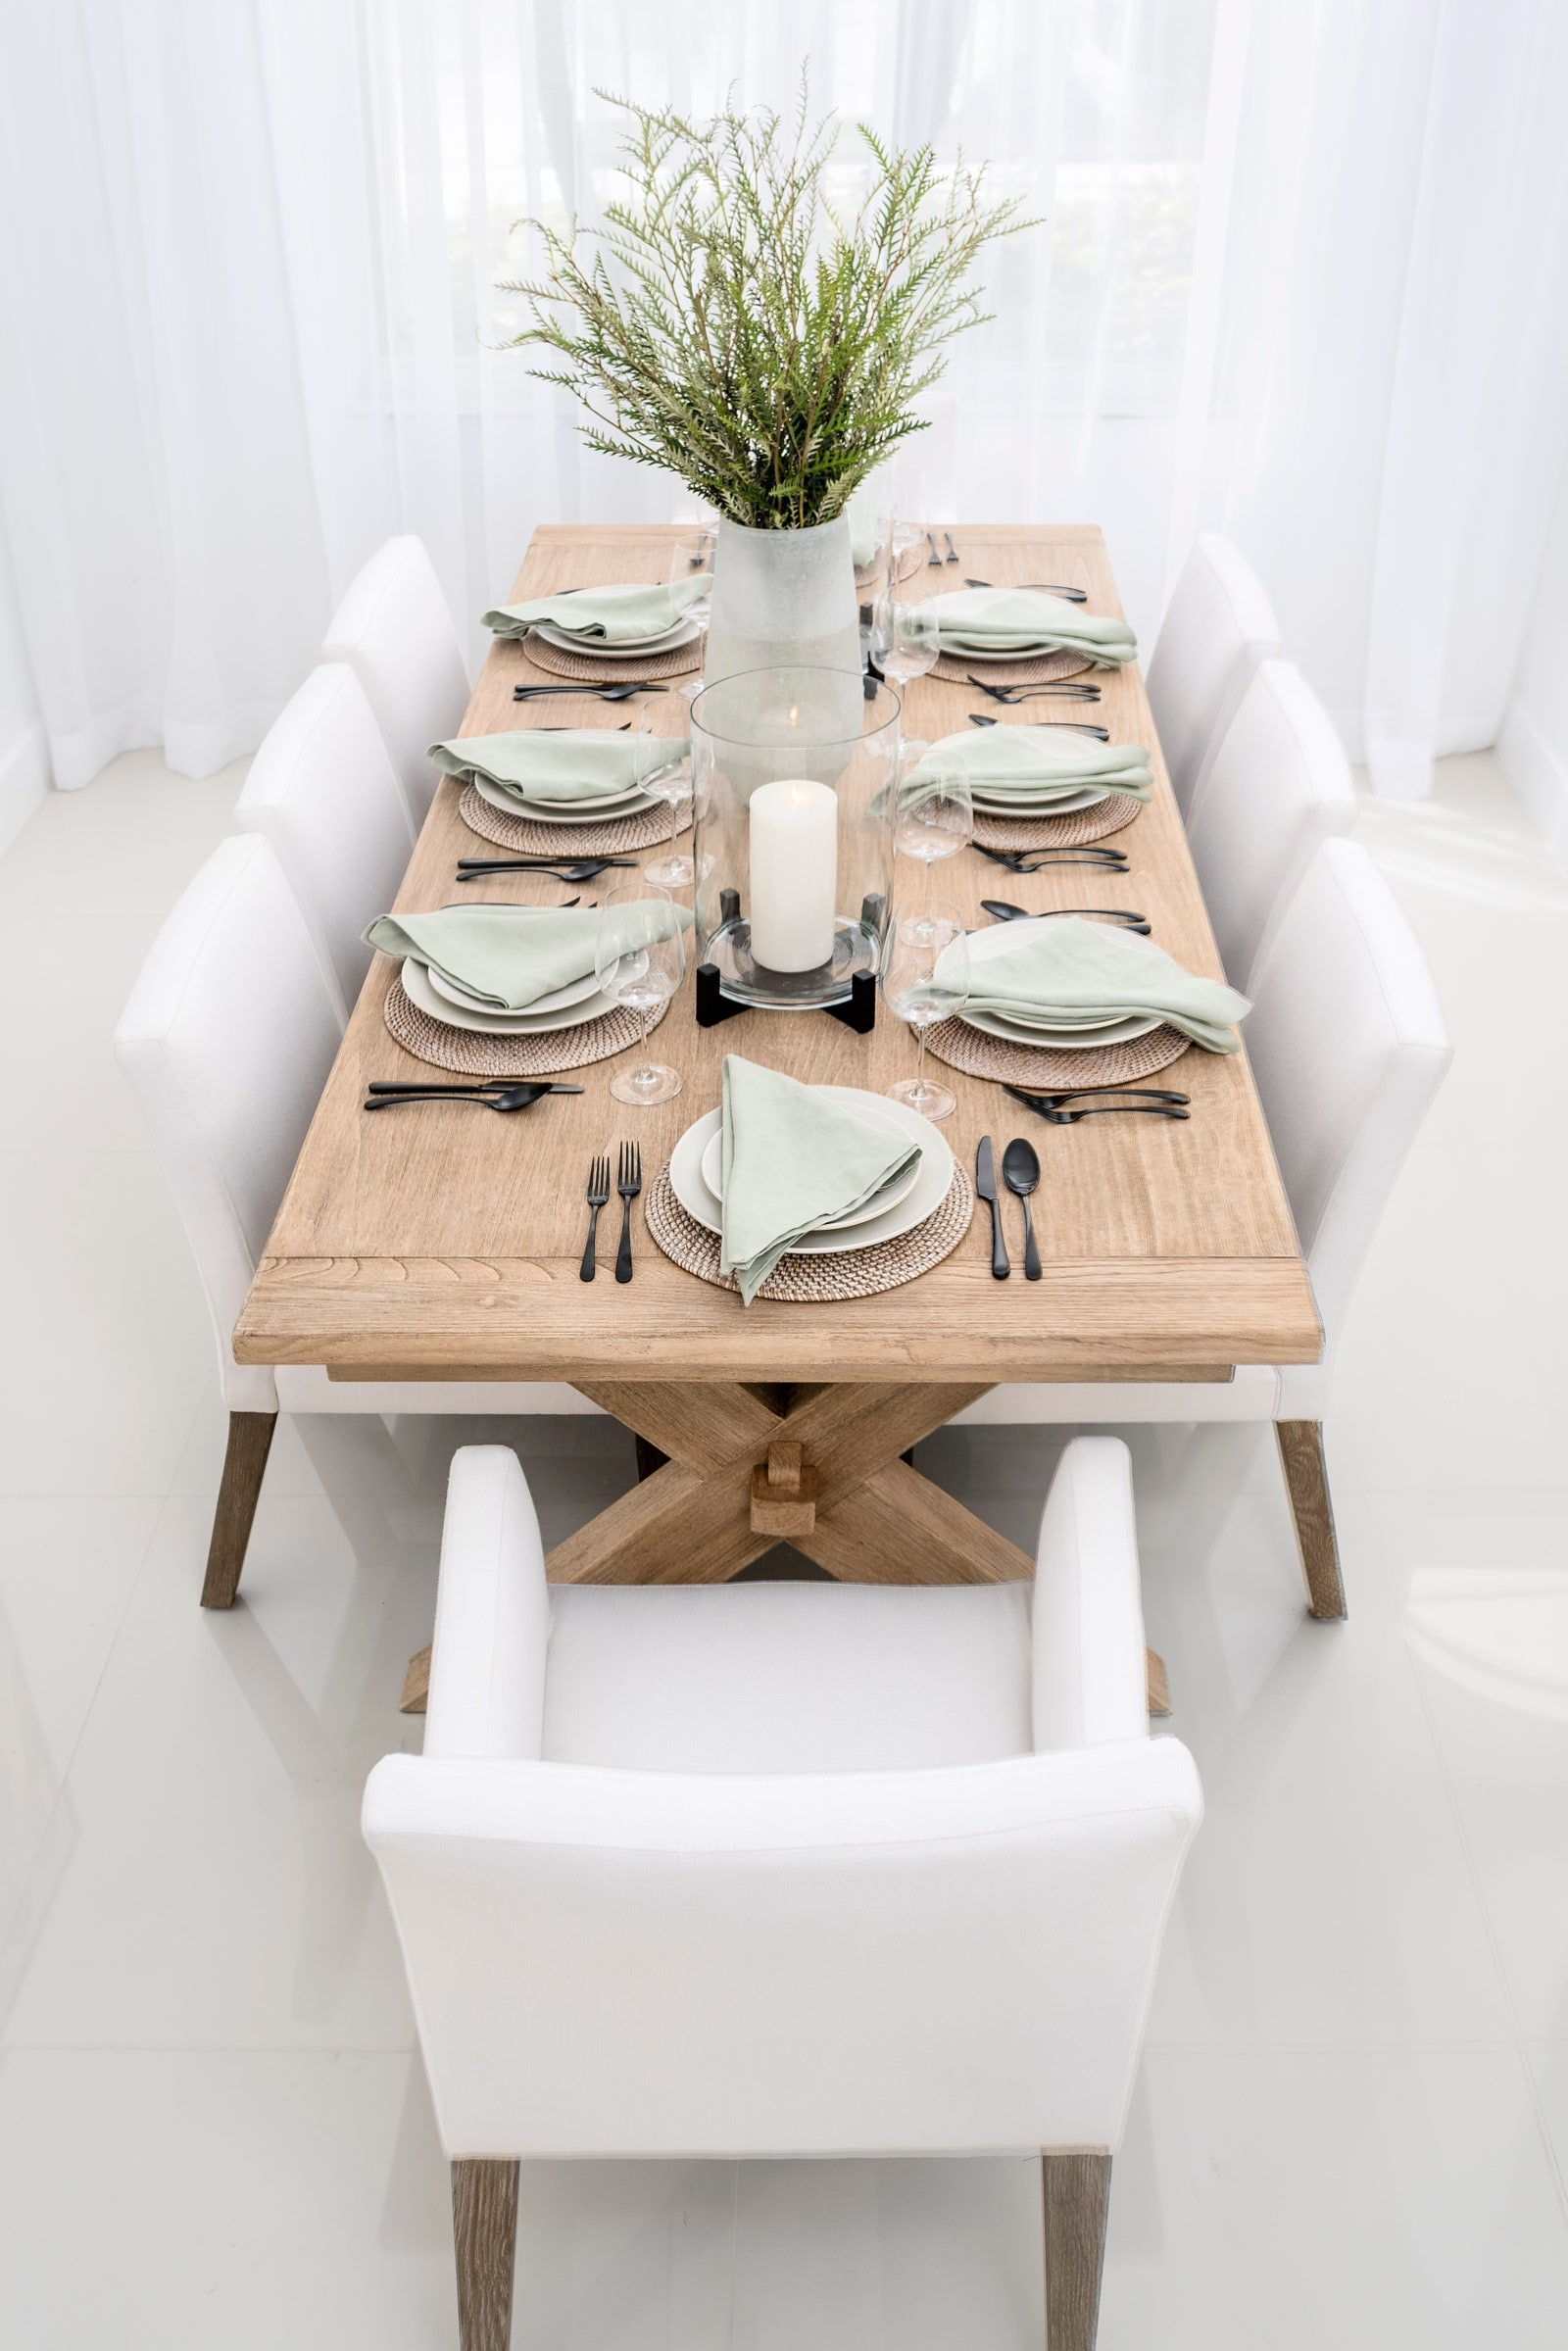 All white dining area with armchaired dining charis and wooden decorated table